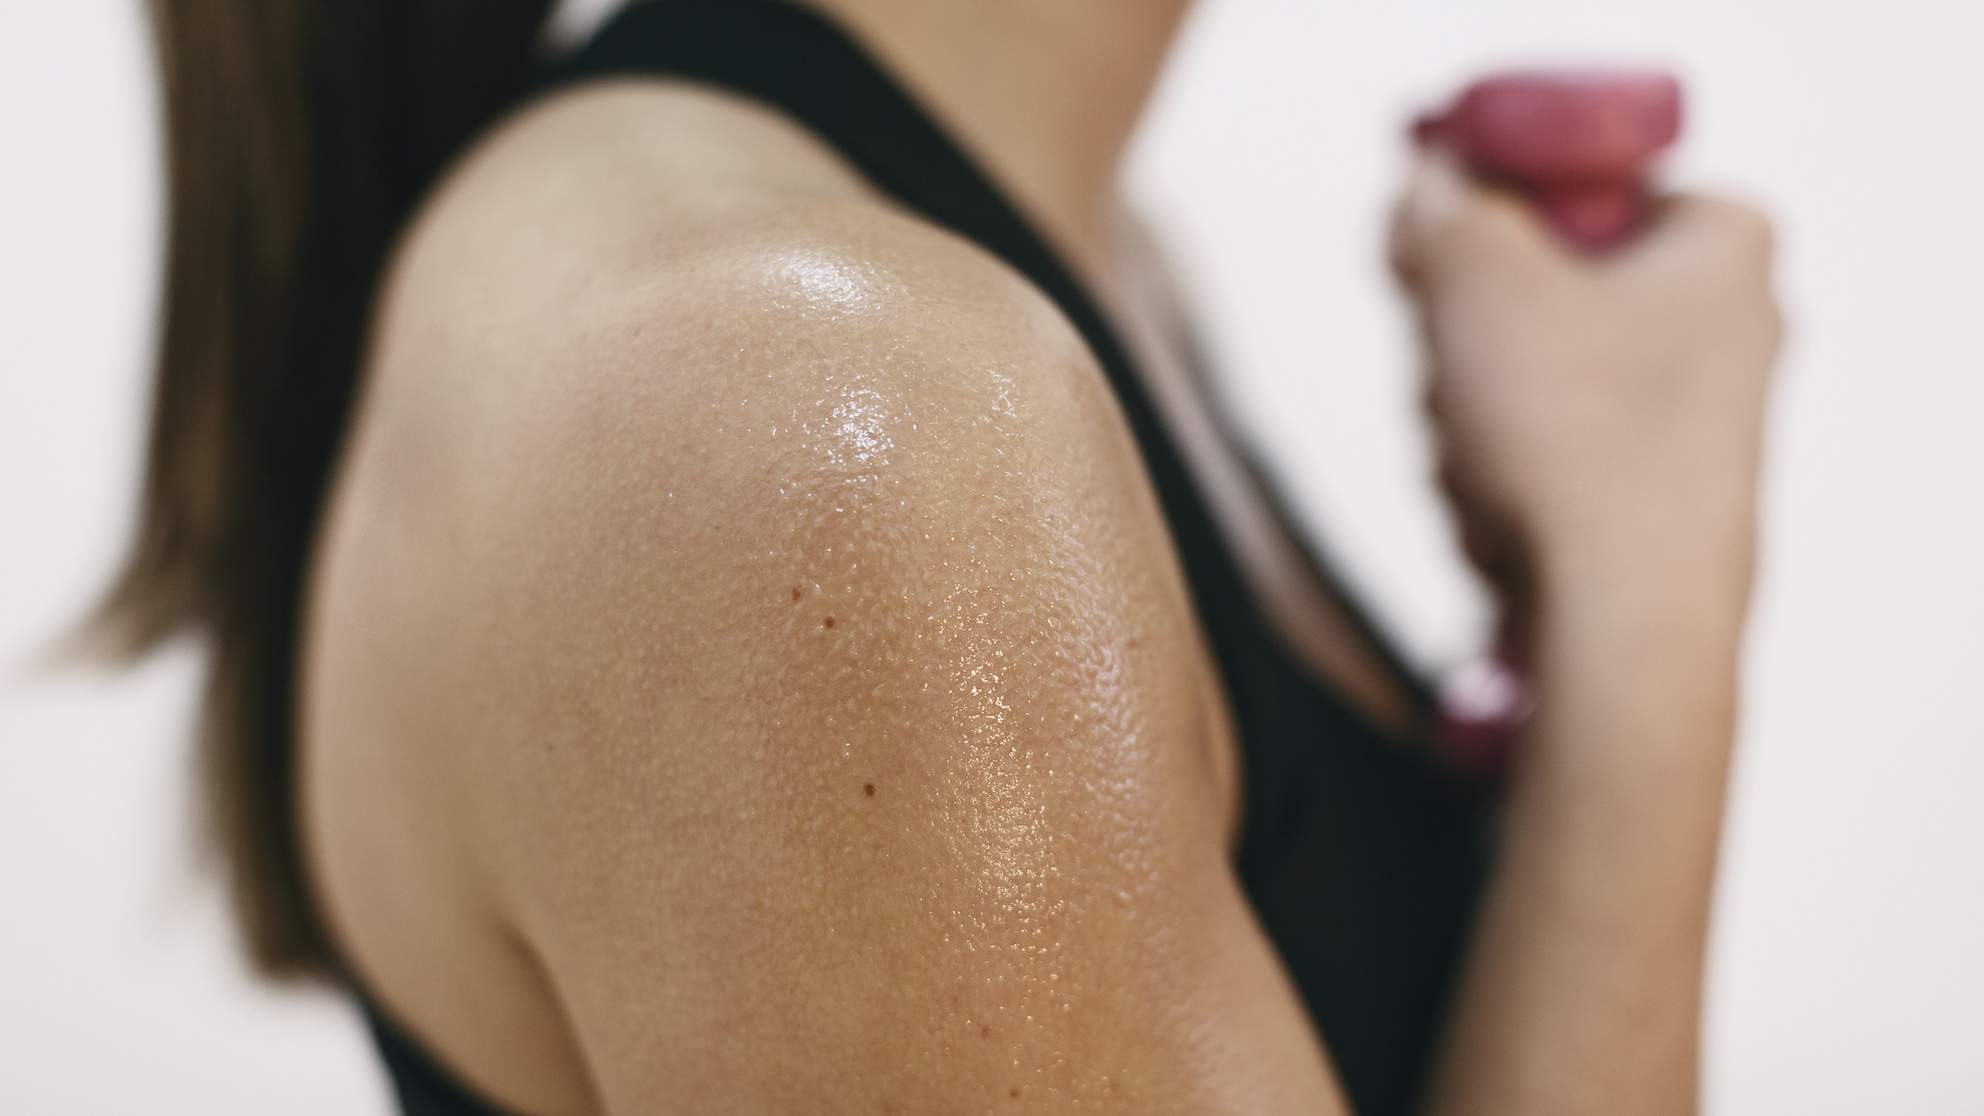 Sweaty shoulder of woman doing fitness workout TIME health stock